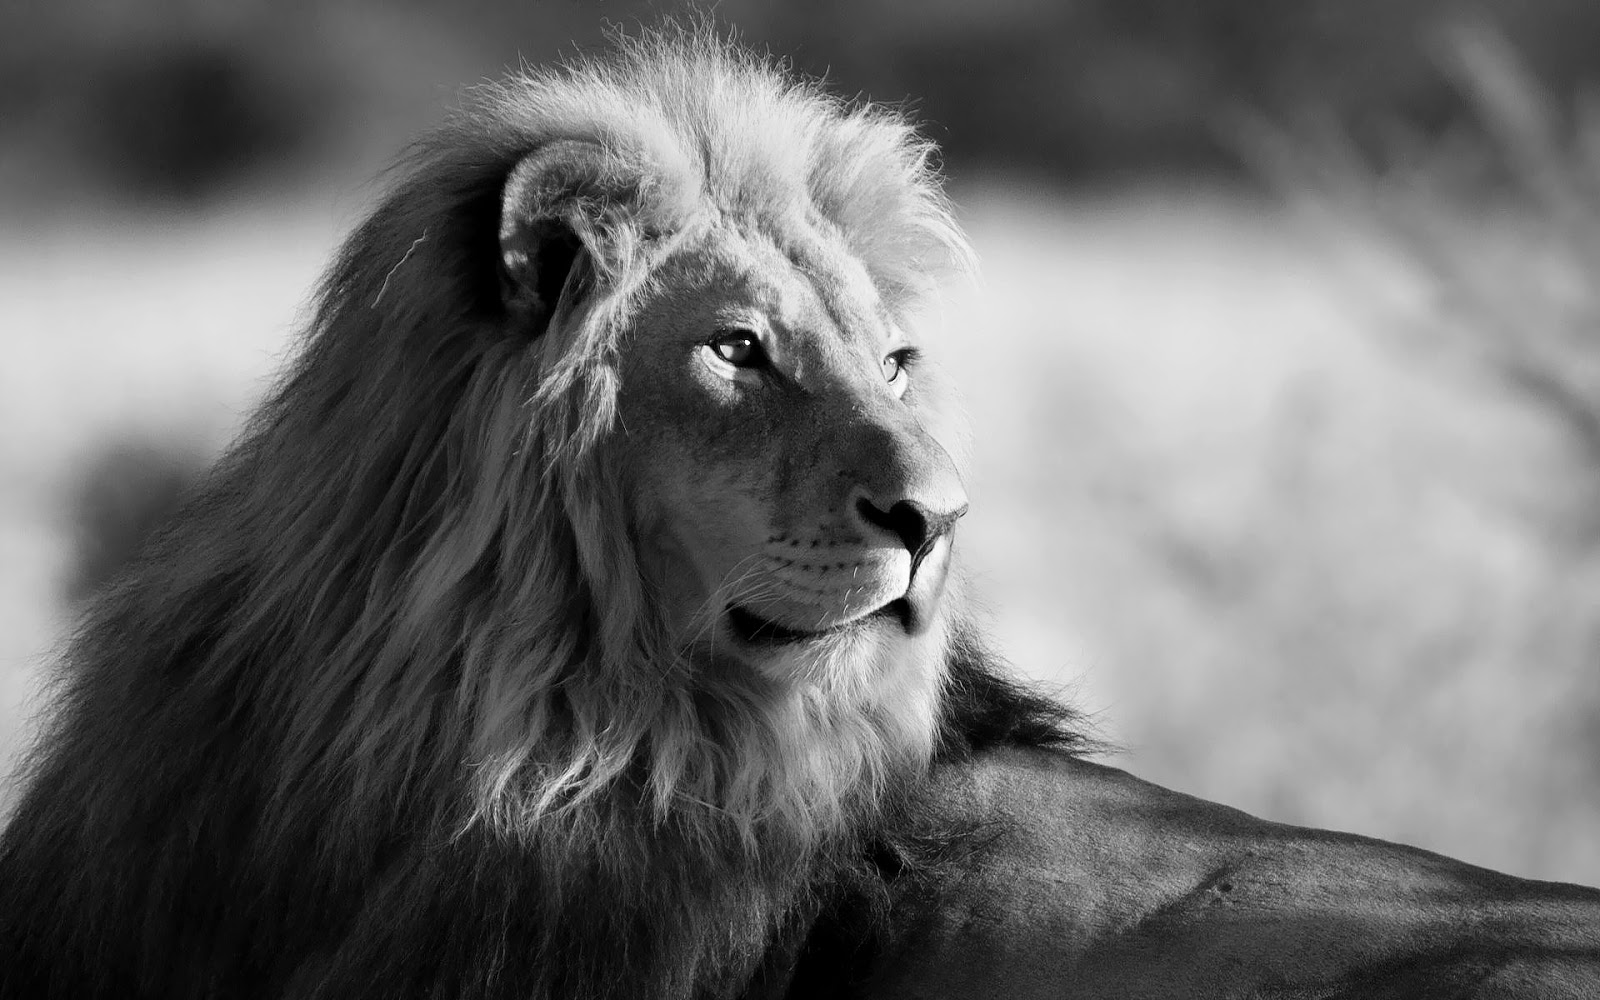 Black White lion animal Wallpaper With Resolutions 16001000 Pixel 1600x1000